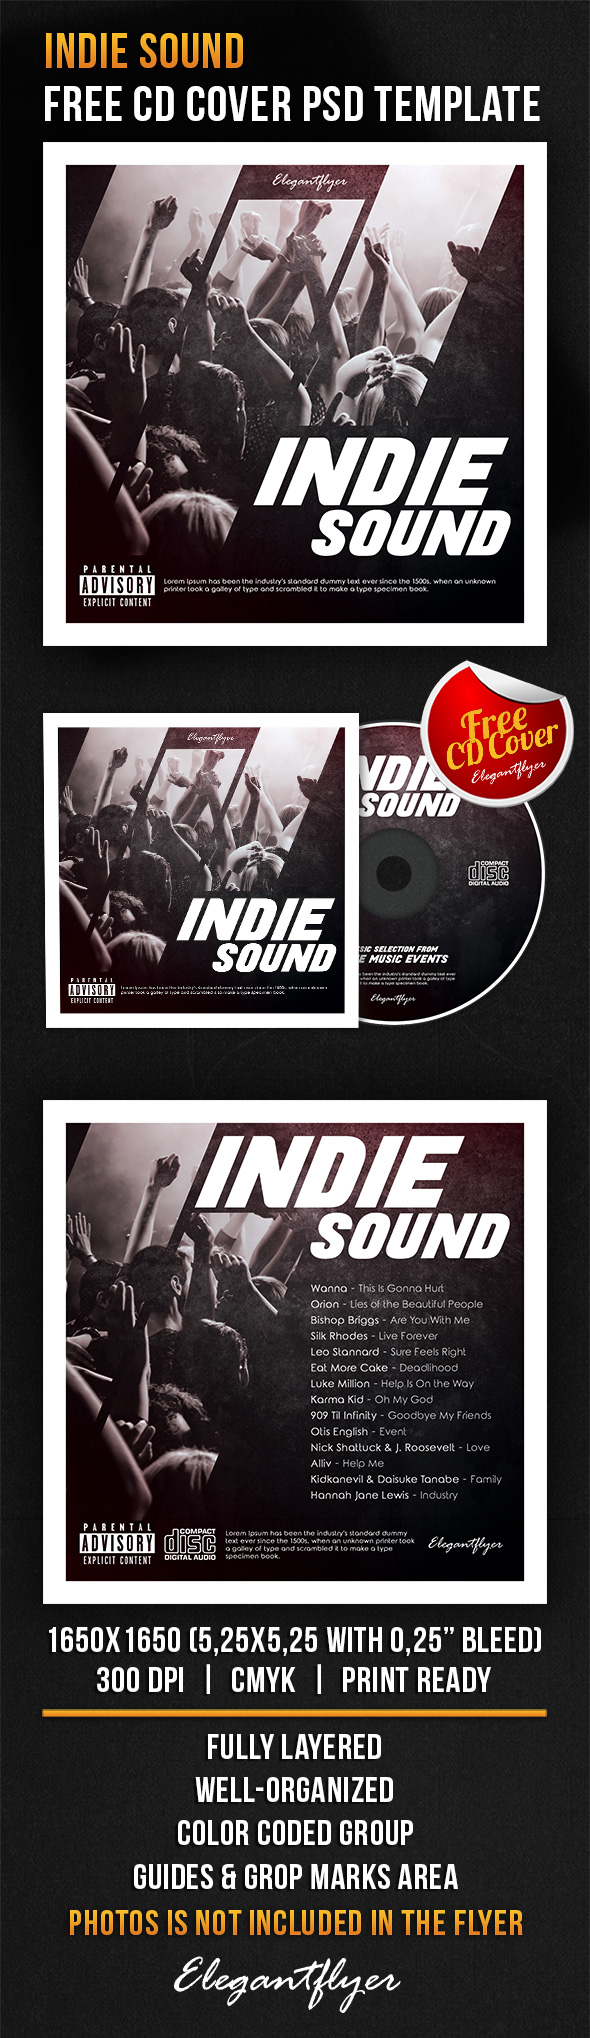 Indie Sound – Free CD Cover PSD Template – by ElegantFlyer